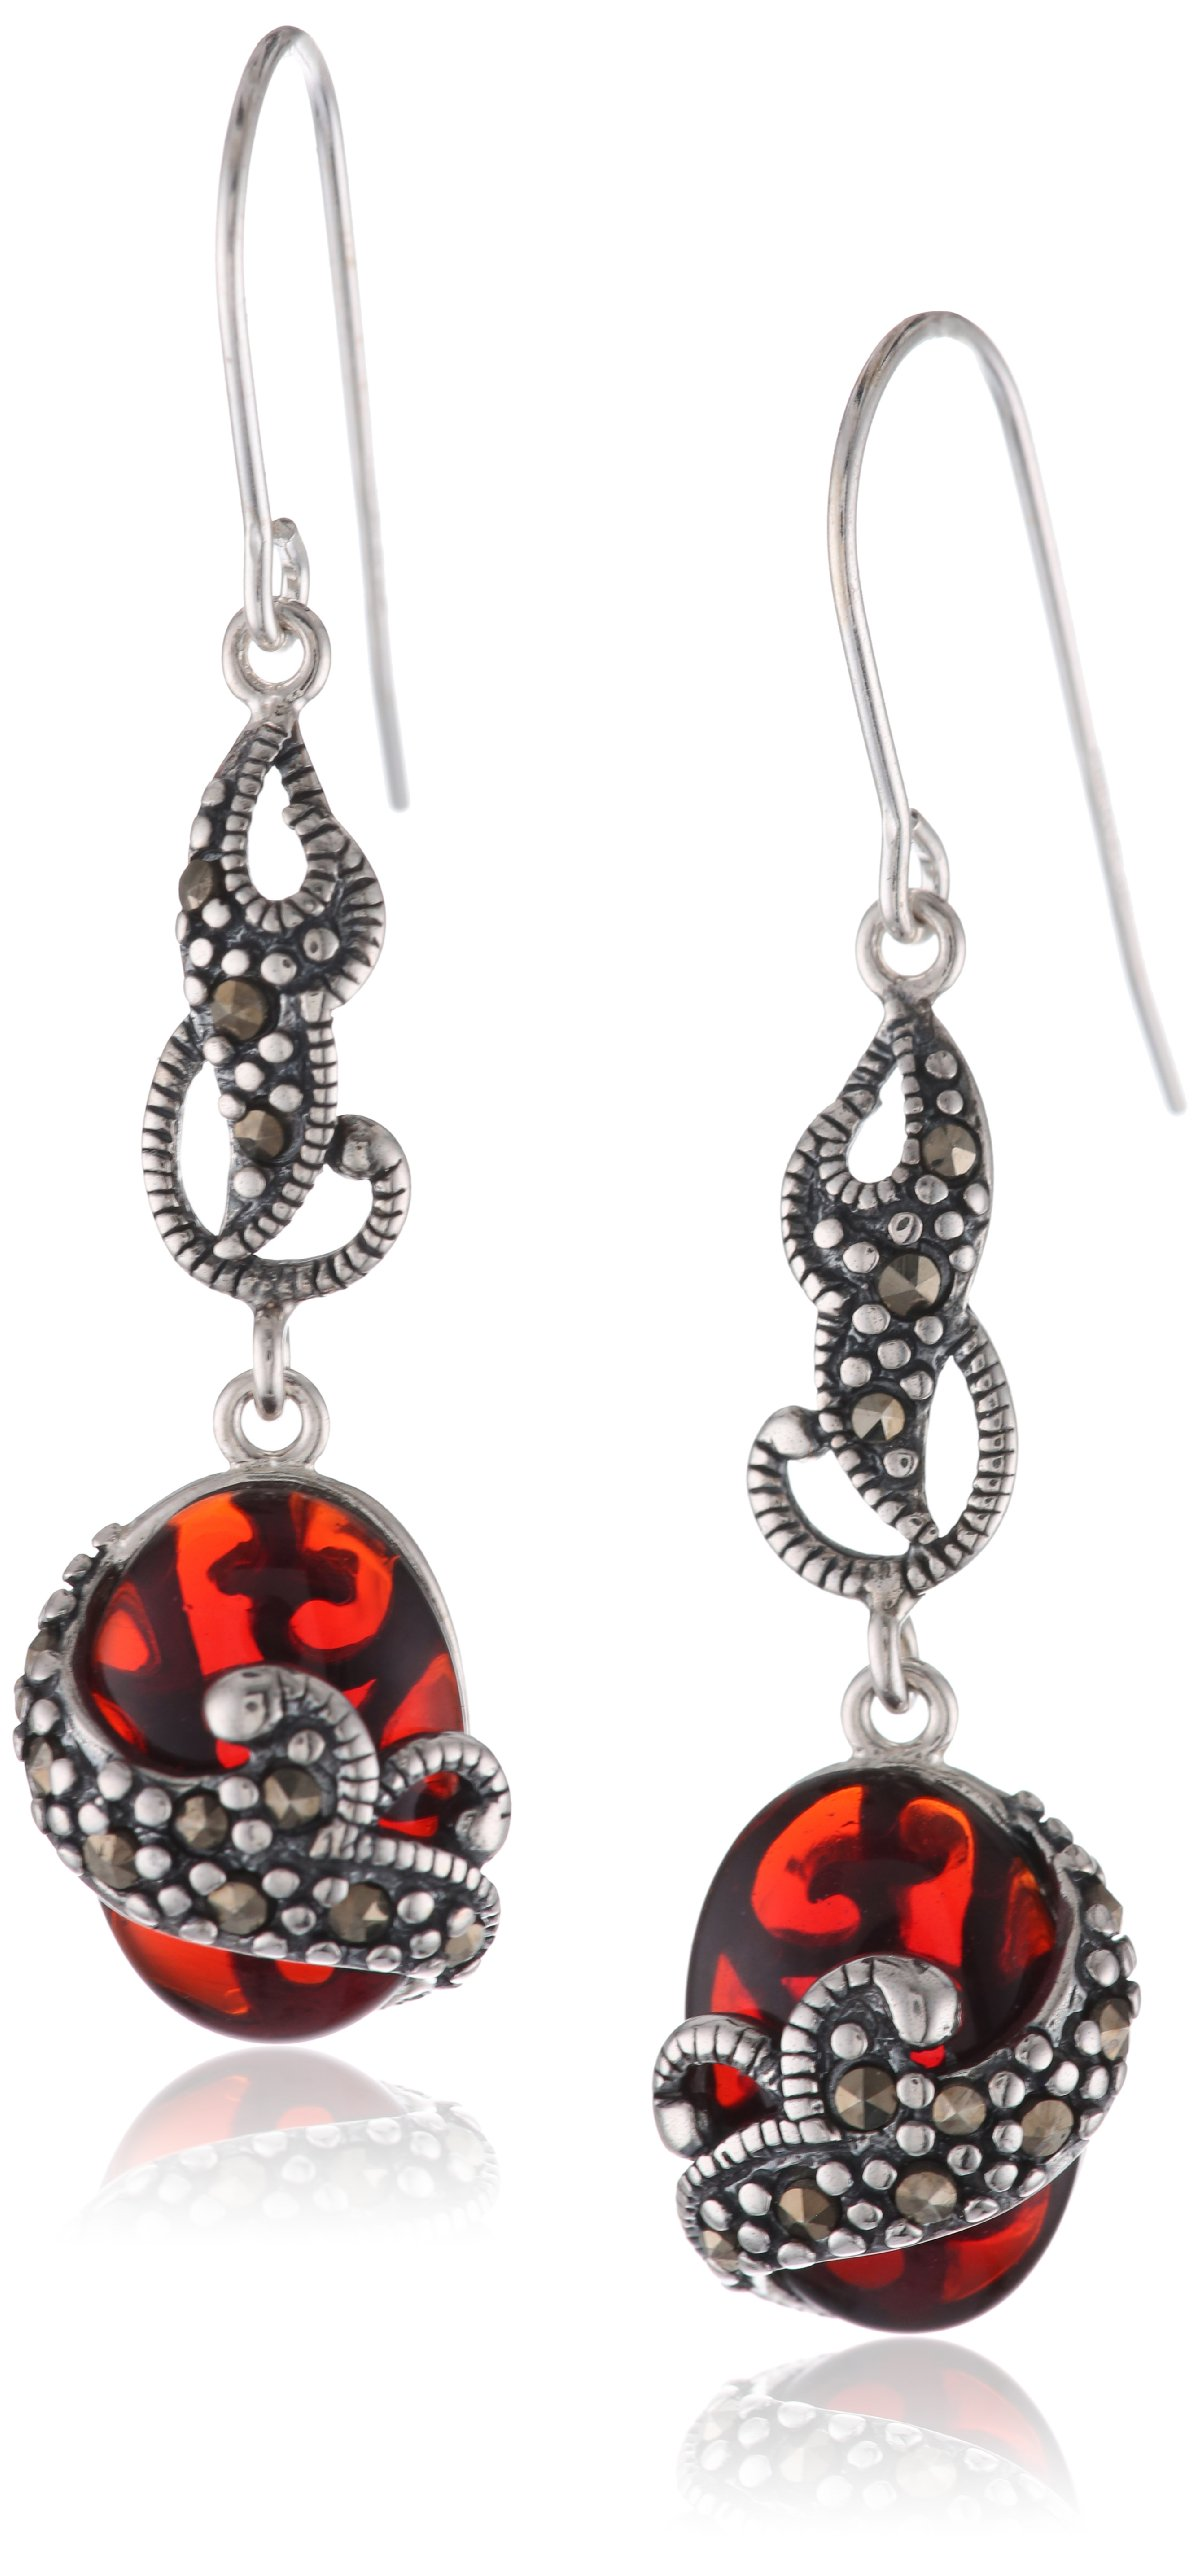 Sterling Silver Oxidized Genuine Marcasite and Red Glass Layered Dangle Earrings